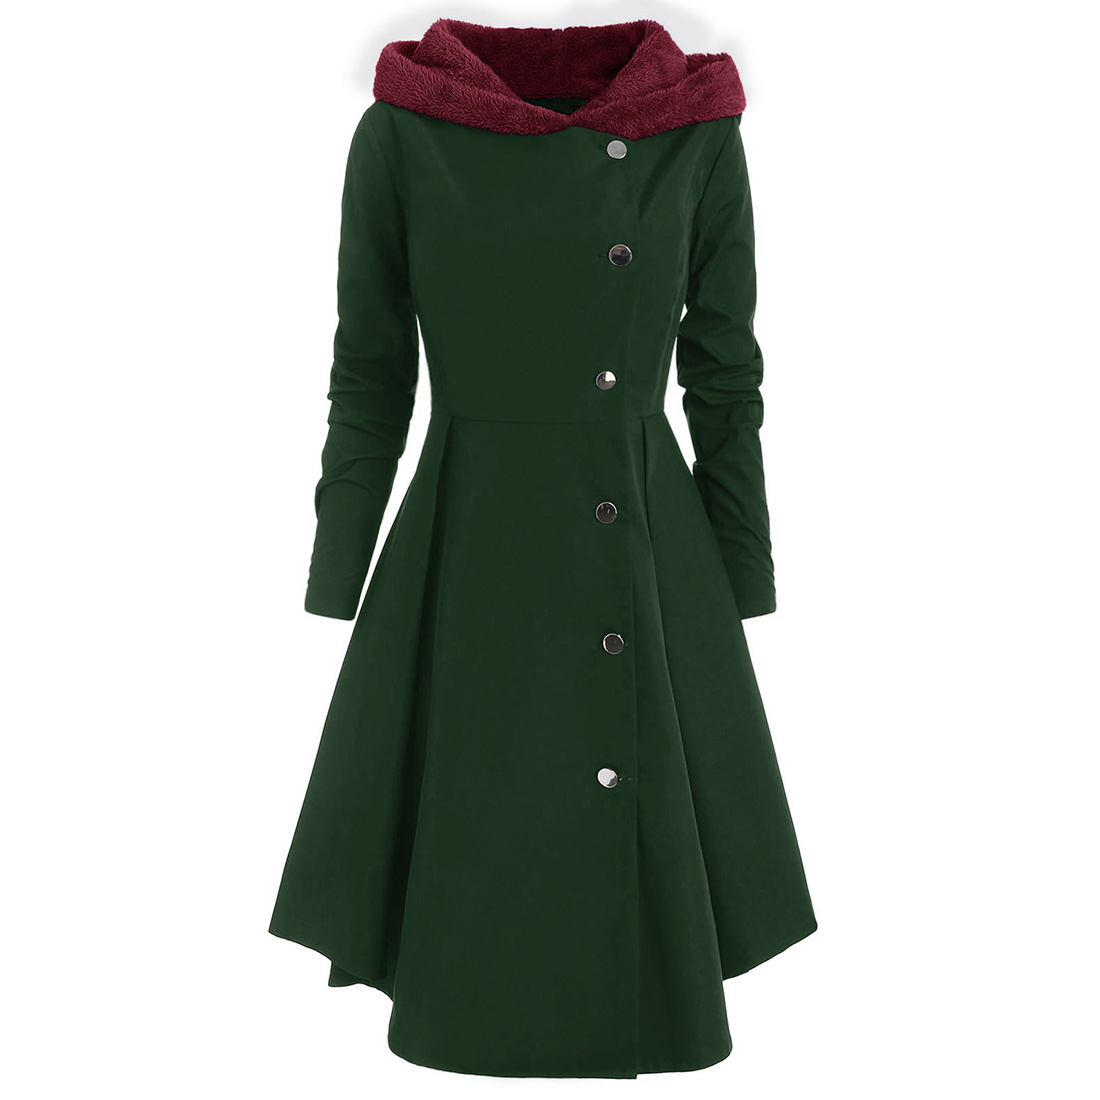 High Waist Vintage Button Hooded Thicken Shopping Warm Daily Casual Slim Solid Soft Long Women Coat